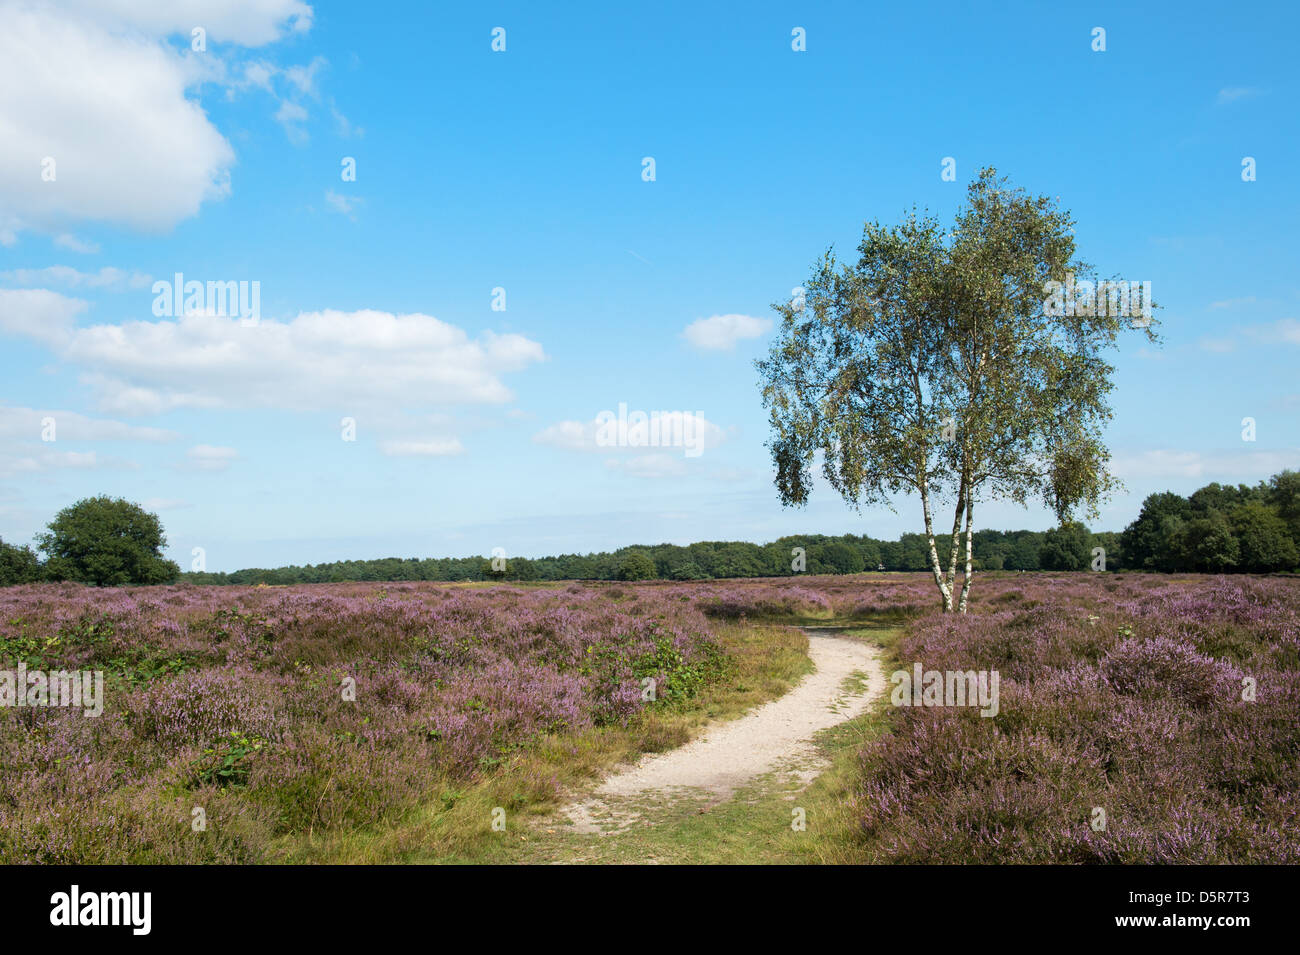 Landscape with flowering heather plants Stock Photo